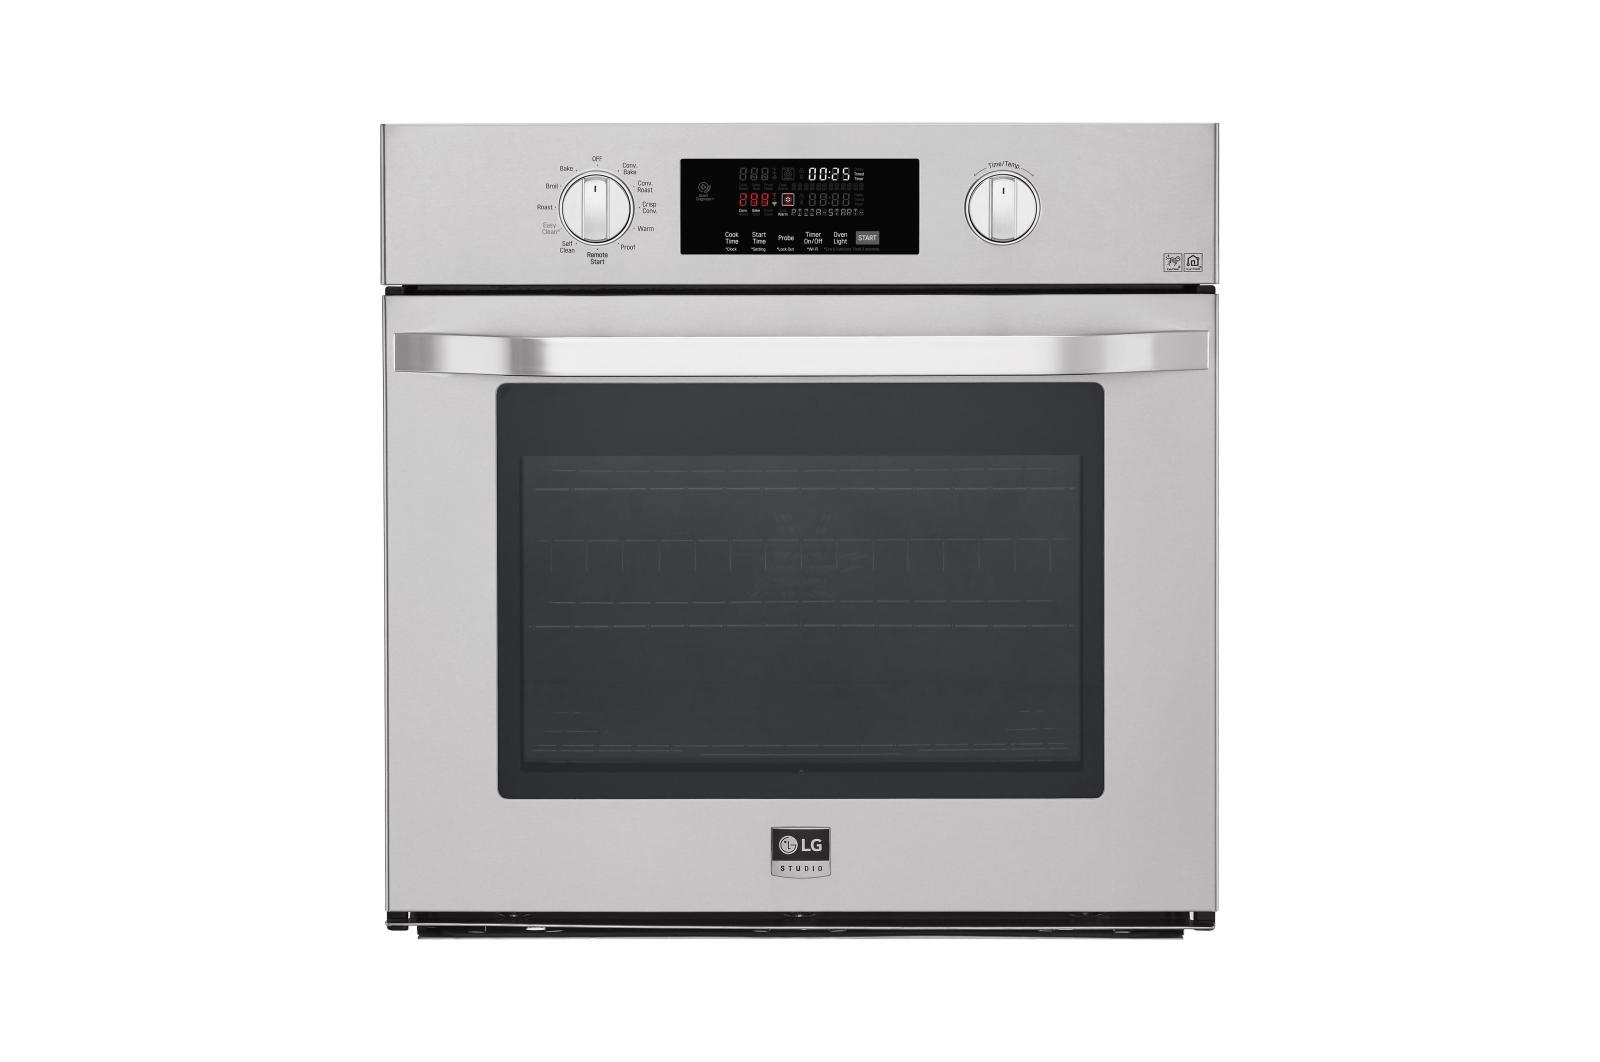 Wall Ovens - A guide to Self-cleaning Oven Cycle